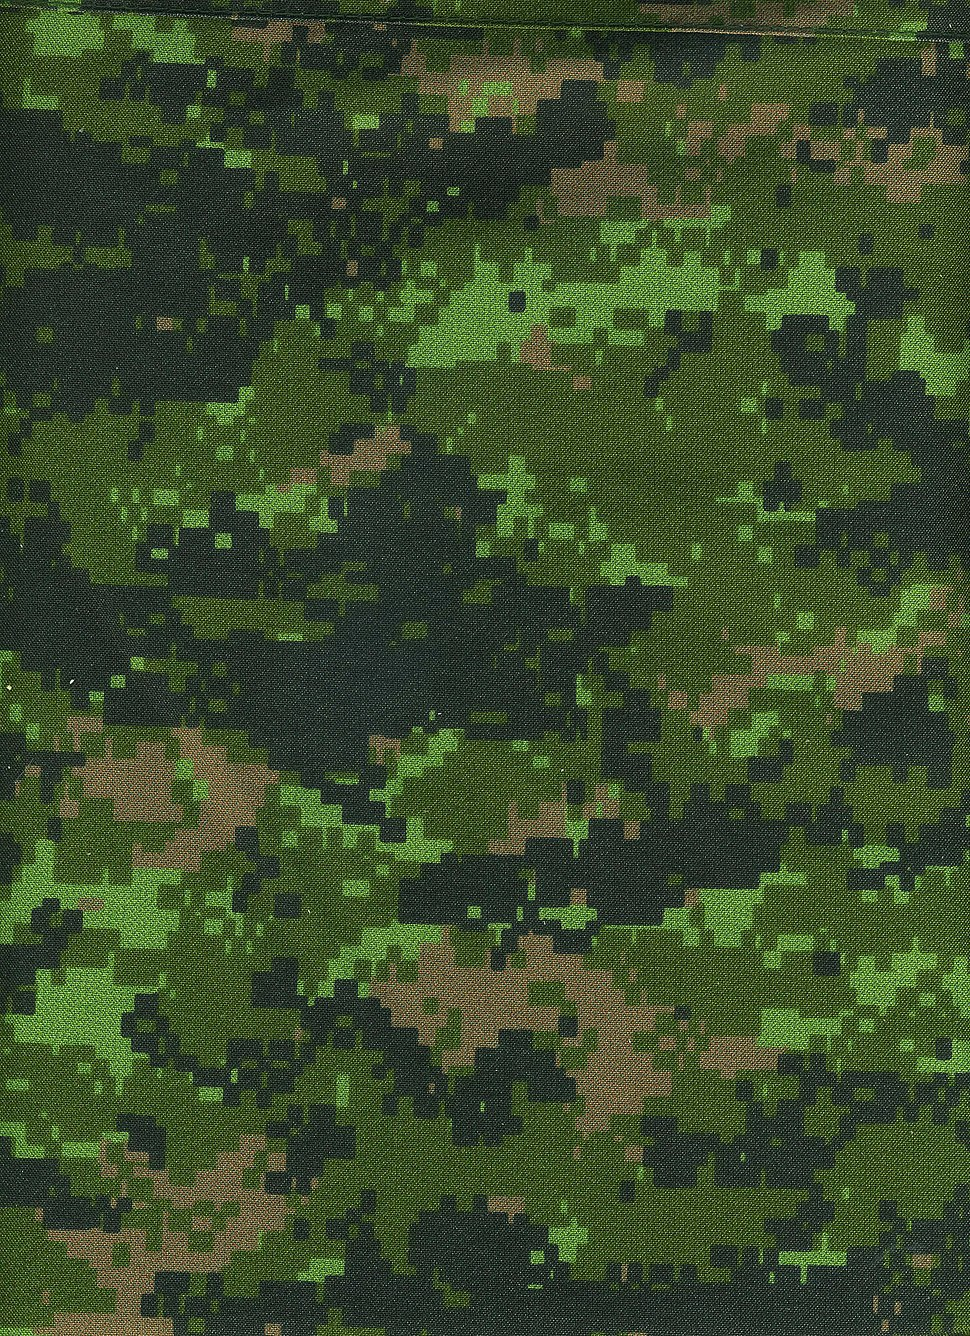 CADPAT digital camouflage pattern (Temperate Woodland variant)